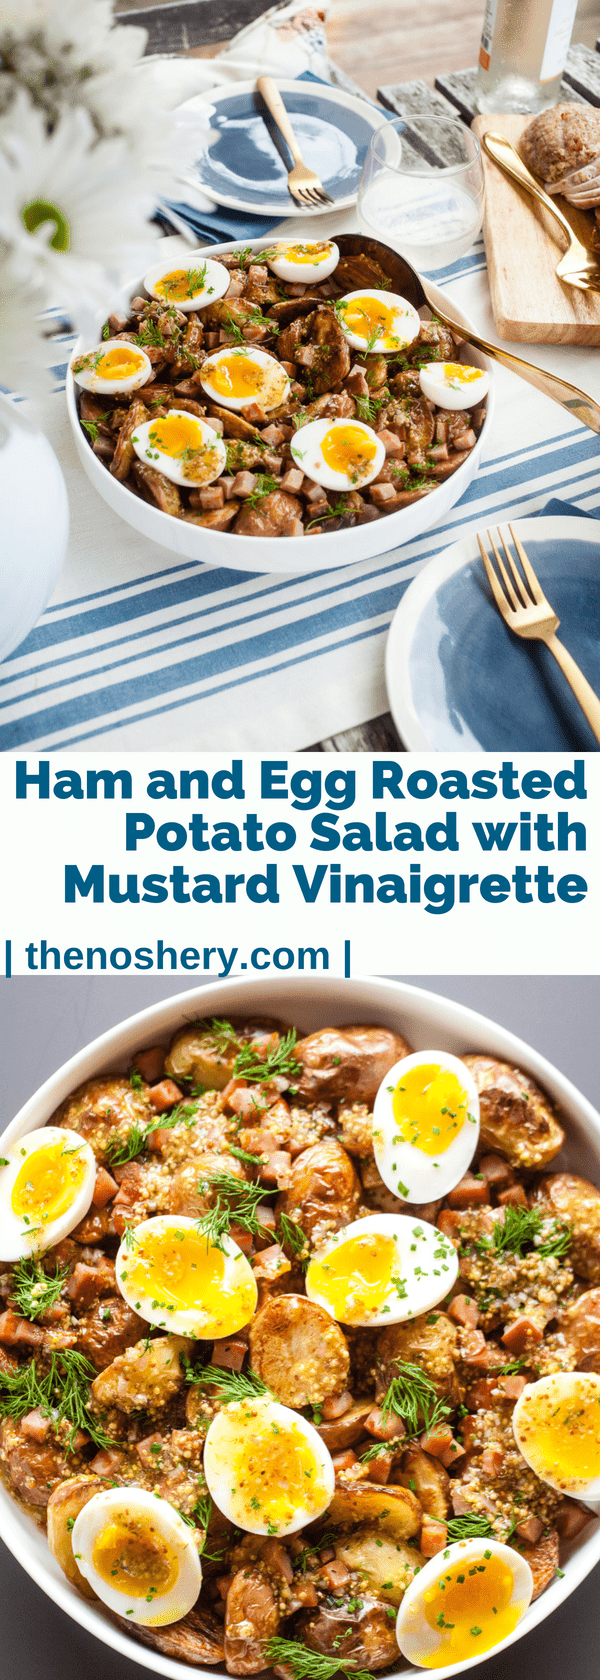 "Ham and Egg Roasted Potato Salad | This isn't your typical ""boiled potato and mayonnaise"" potato salad. The roasted potatoes give this salad little more texture. Then they are then topped with diced smoked ham, soft boiled eggs, whole grain mustard vinaigrette, dill, and chives. 